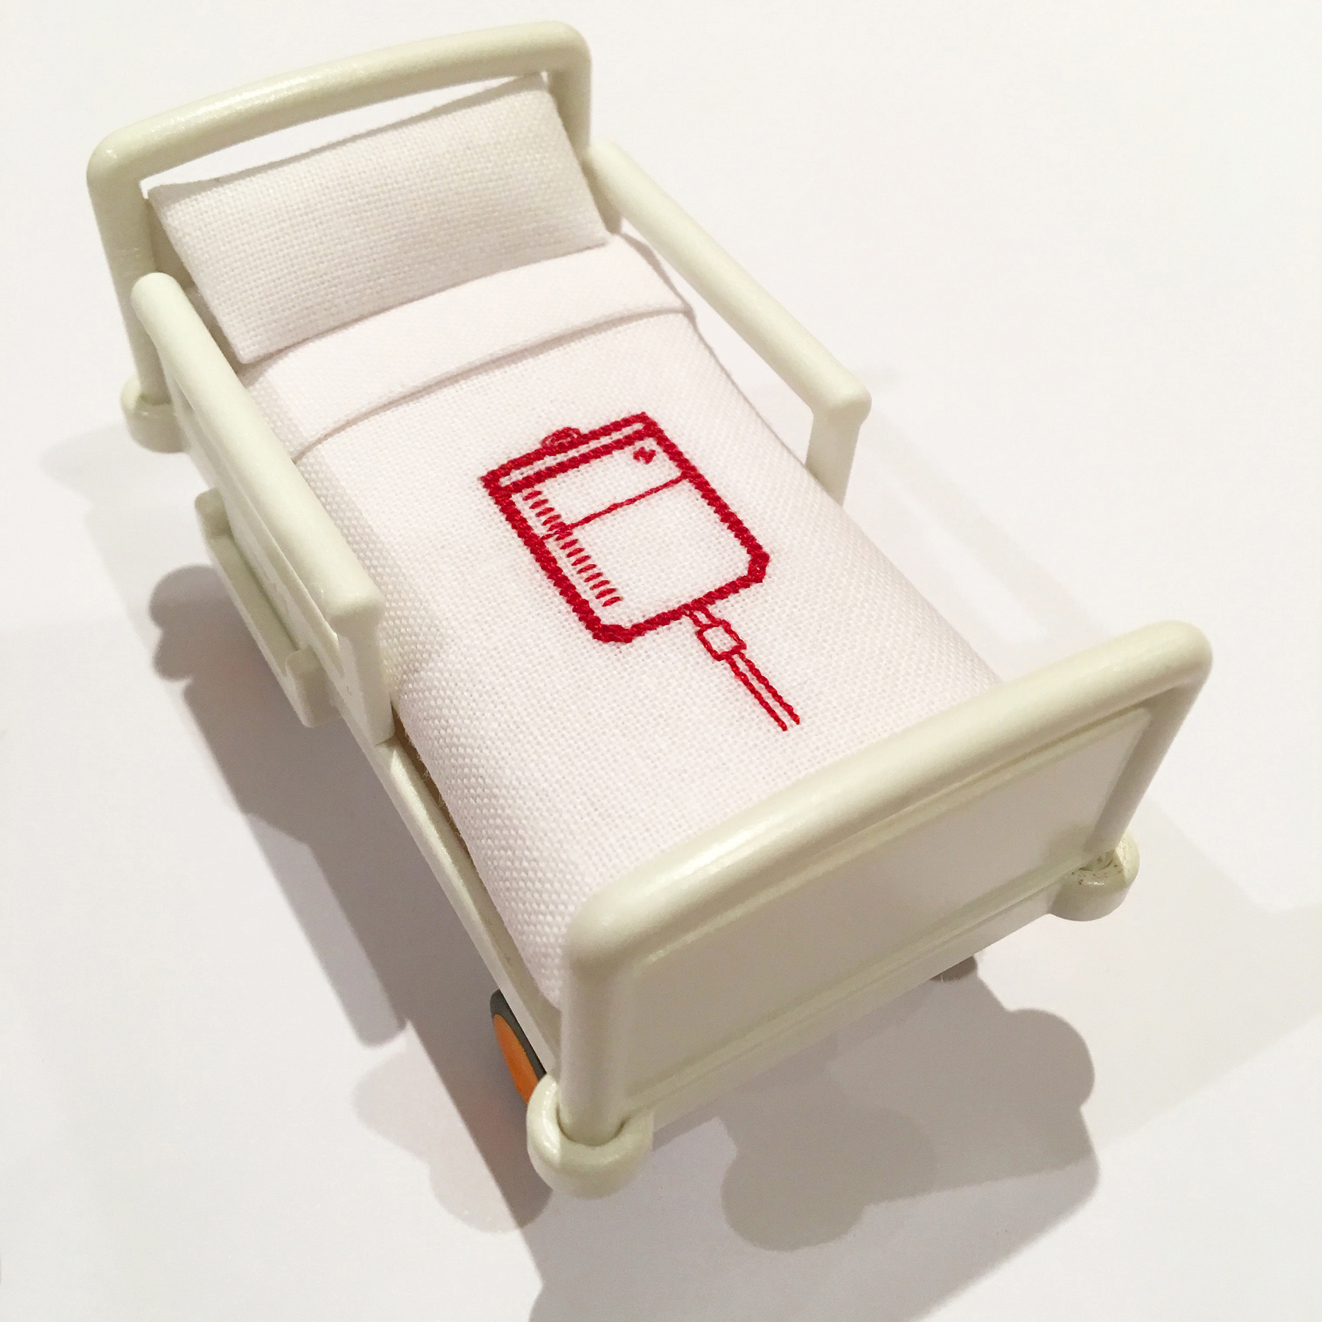 Room for Improvement (detail), 2018, toy bed, cotton, silk threads, 7 cm x 4.5 cm x 4 cm. NFS